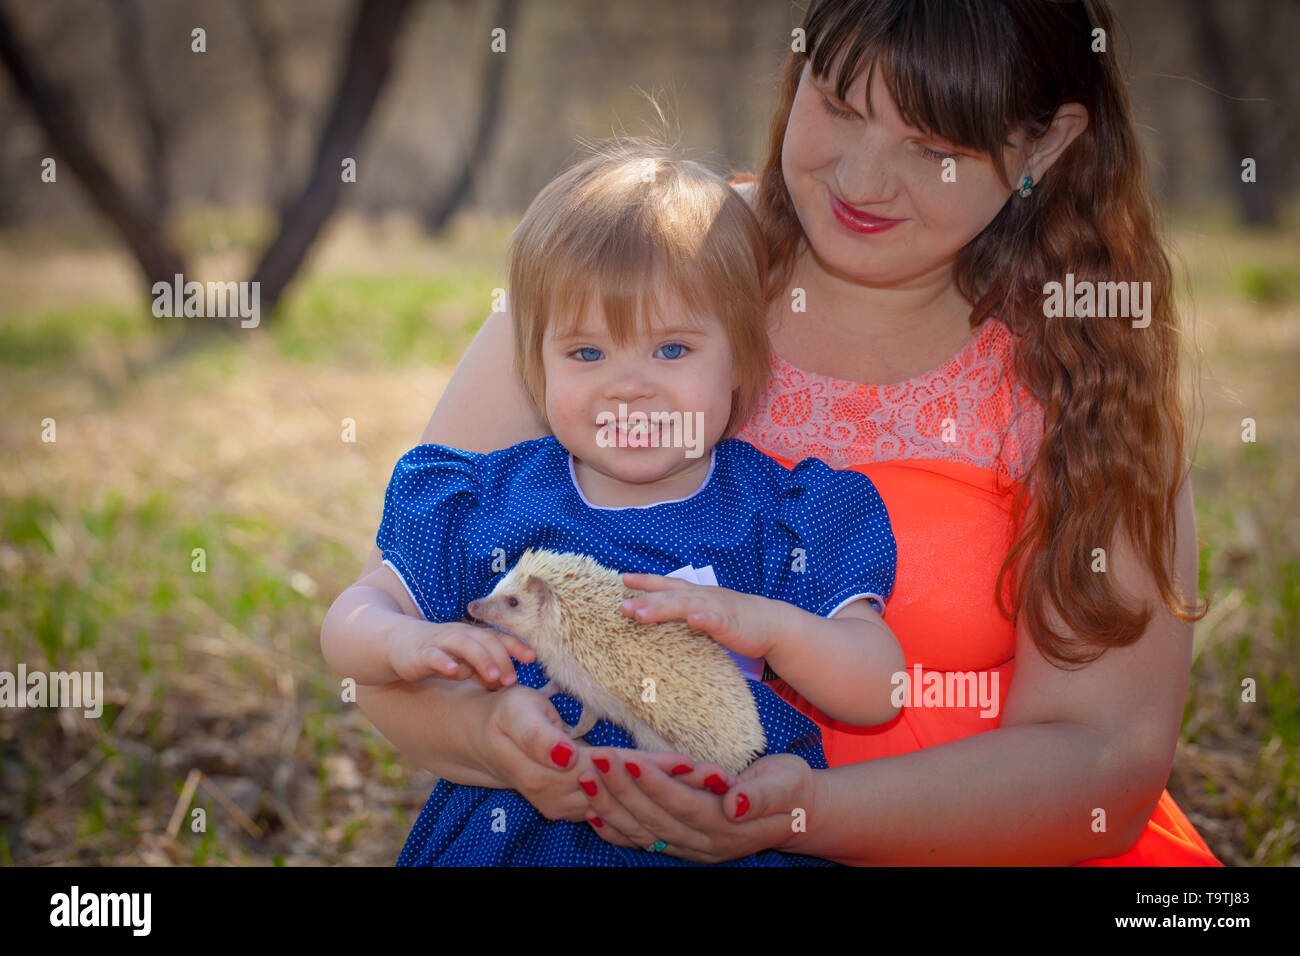 Family concept. Mom and daughter are playing with a hedgehog. Little girl petting a rodent. - Stock Image